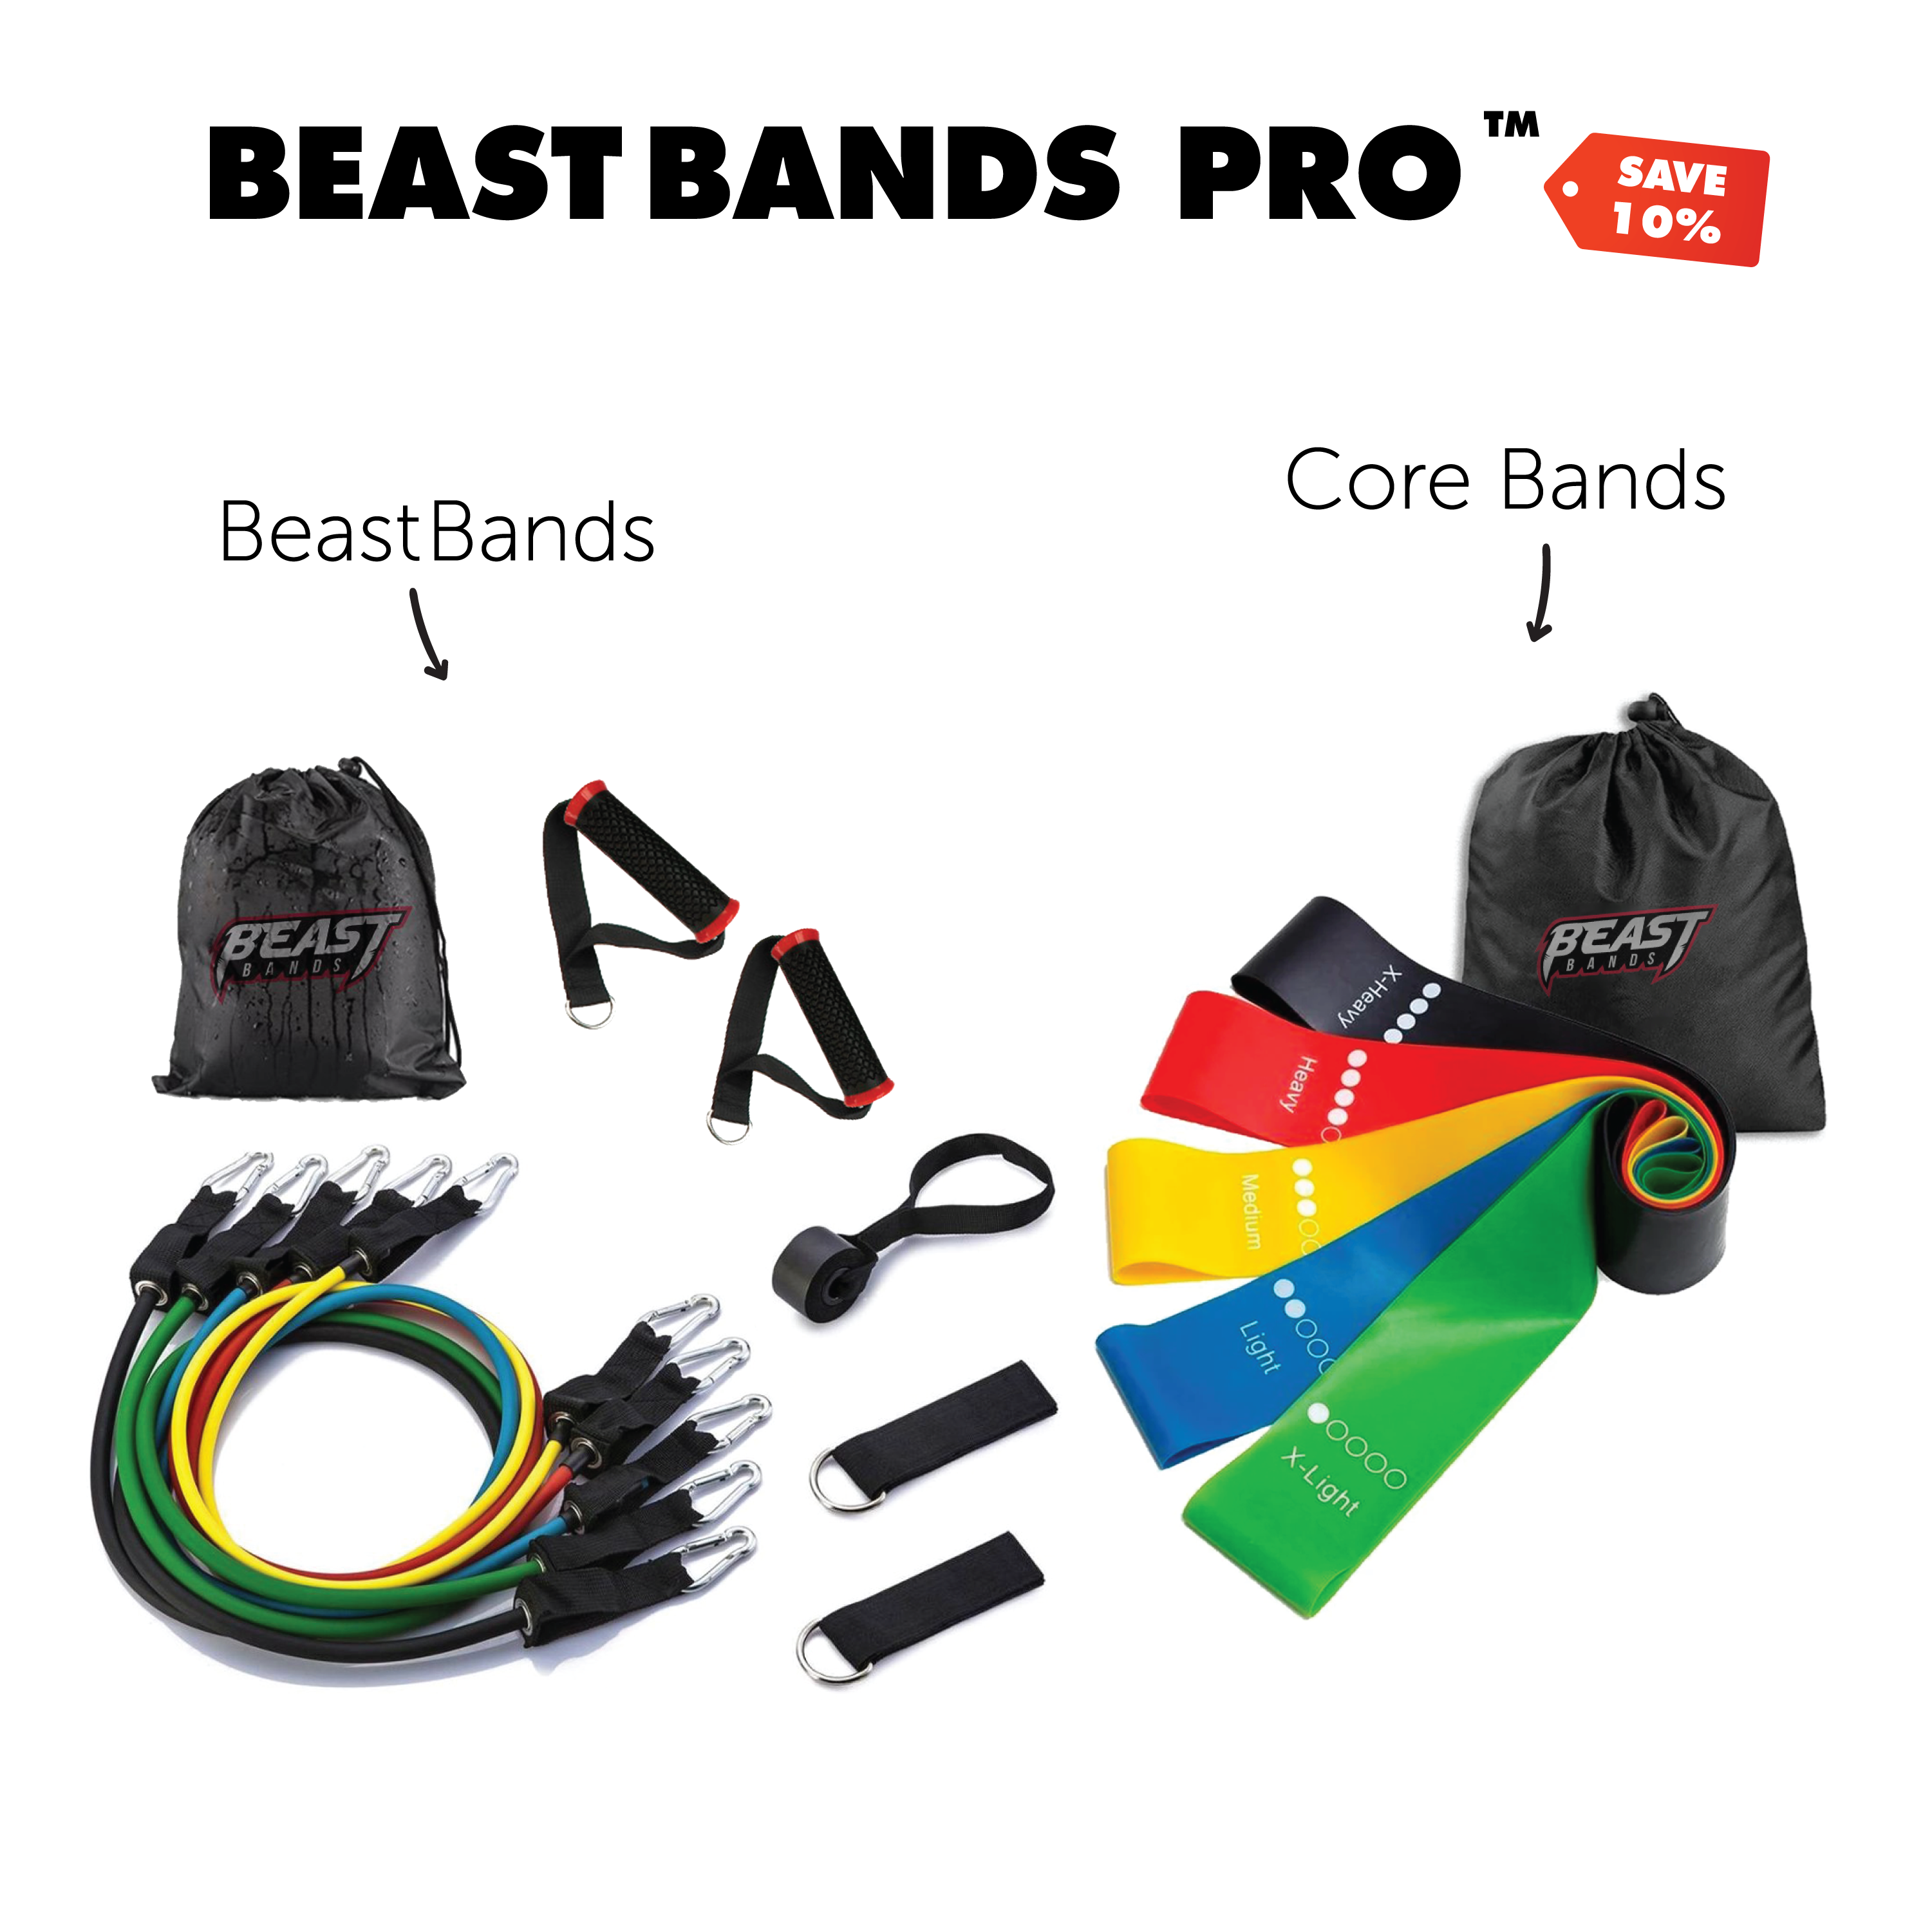 BeastBands Pro™ 16pc